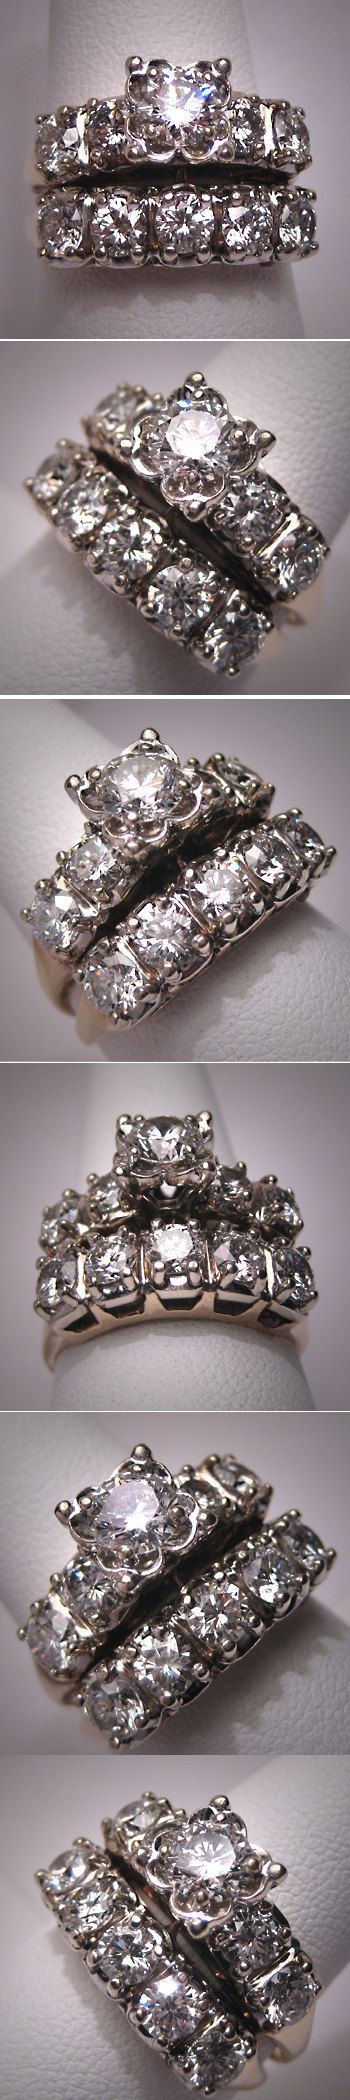 Antique Wedding Ring Set Vintage Diamond Art Deco Wt. Gold Three Carats... This one is a dream!